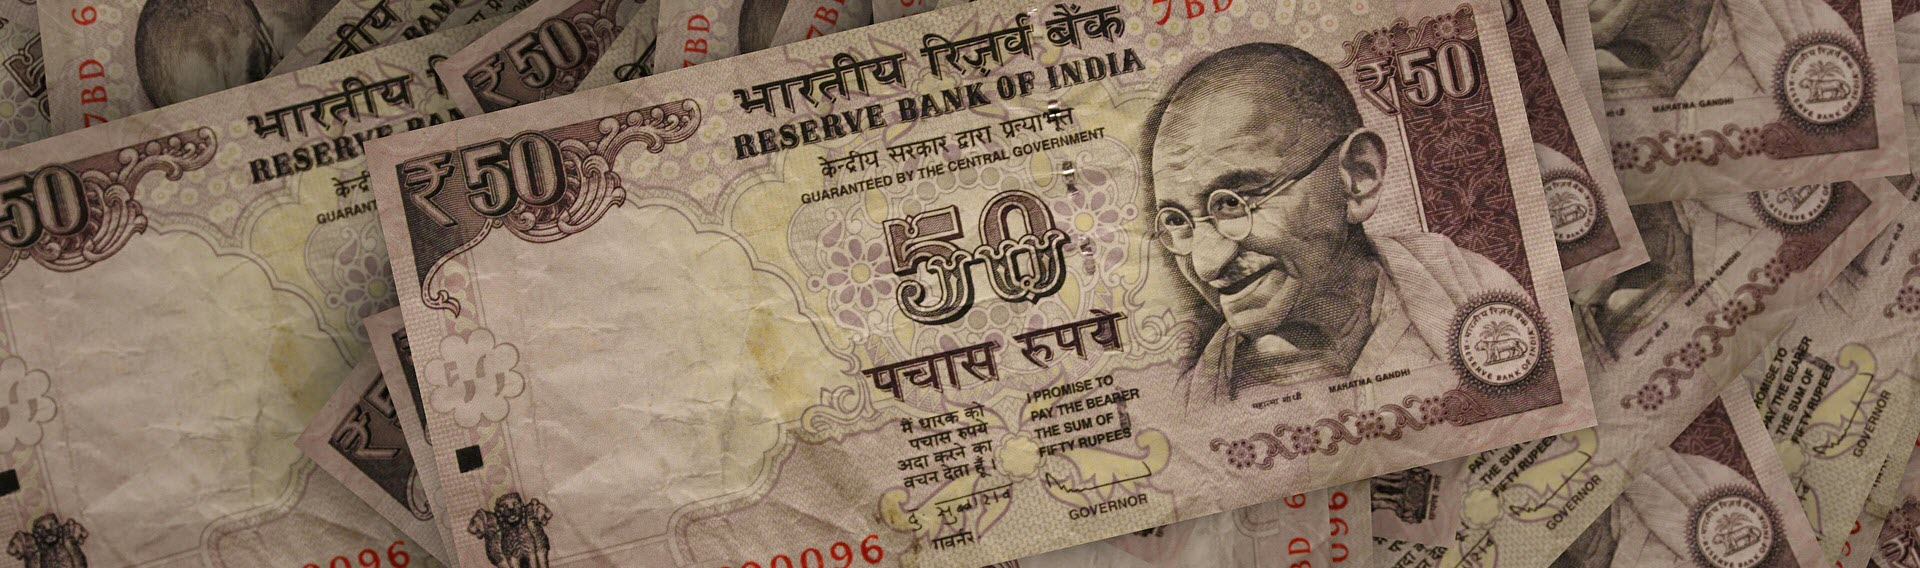 rupees-587271_1920